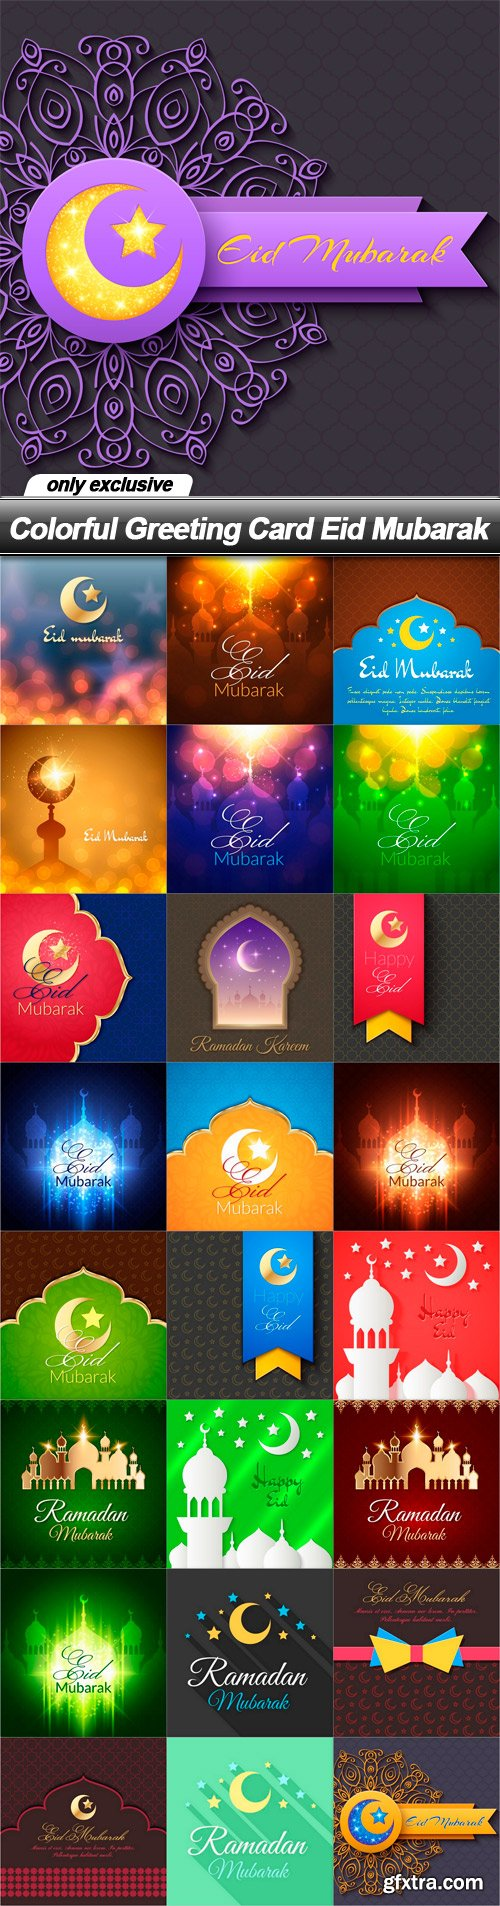 Colorful Greeting Card Eid Mubarak - 25 EPS